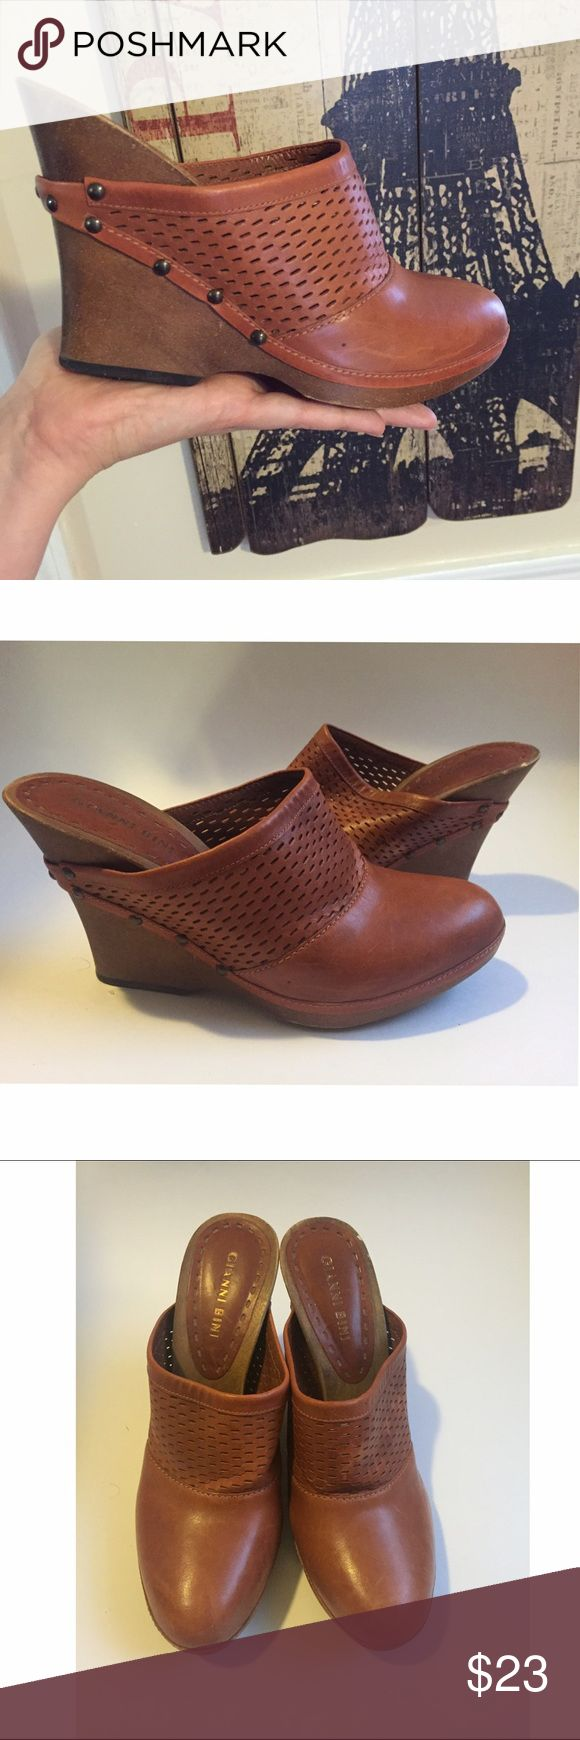 Clogs wood wedges Gianni bini clogs wood wedges Some details on the wood part Condition: light worn Color: brown  Brand: Gianni bini Size; 8 Tag for searches; wedges, wood wedges, Gianni bini, Gianni bini shoes, Gianni bini wood wedges , clogs , Gianni bini clogs Gianni Bini Shoes Mules & Clogs